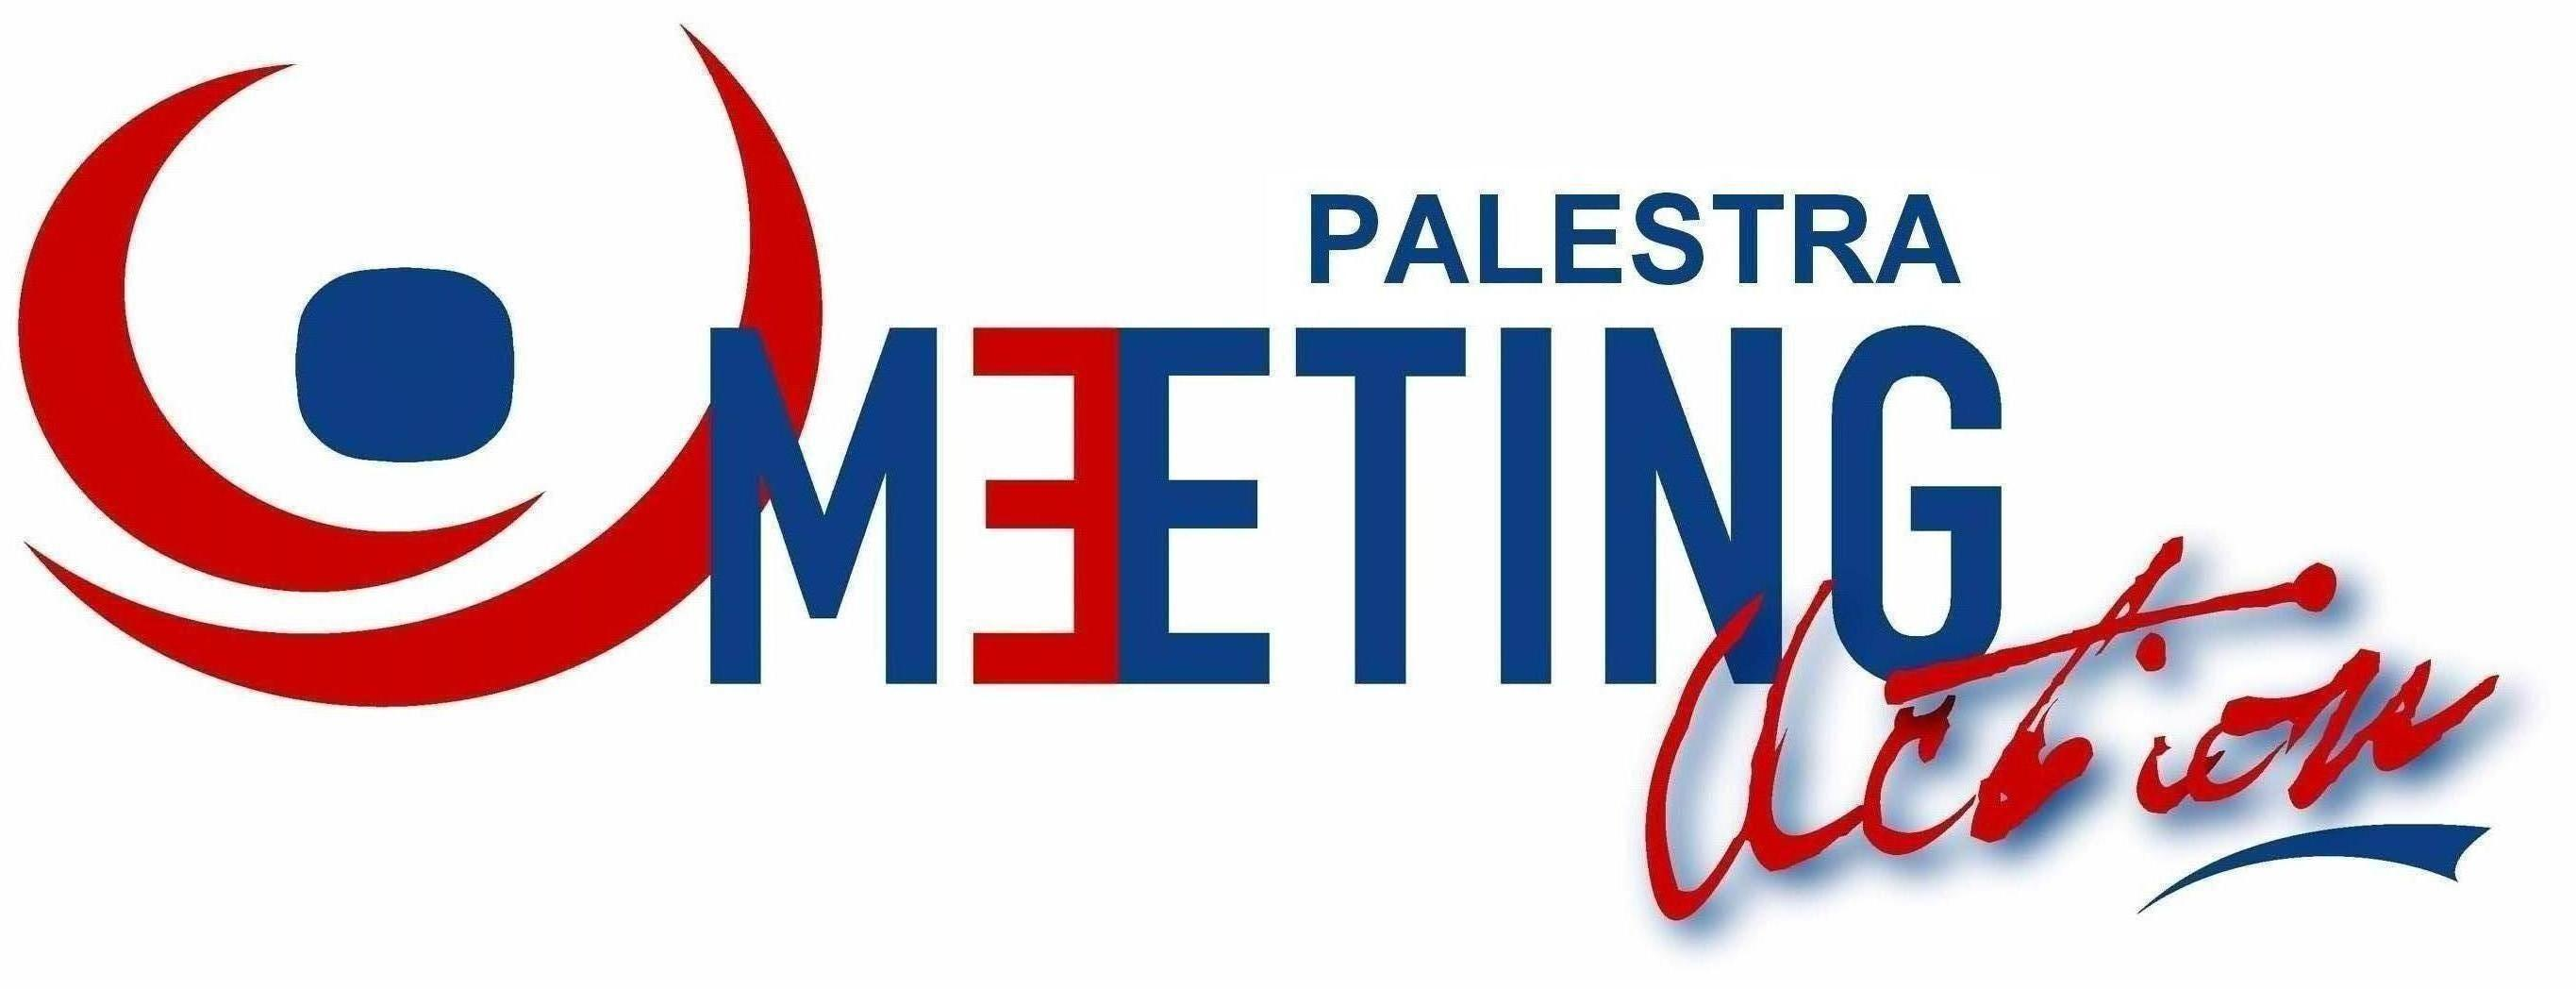 Palestra Meeting Action - Tolentino